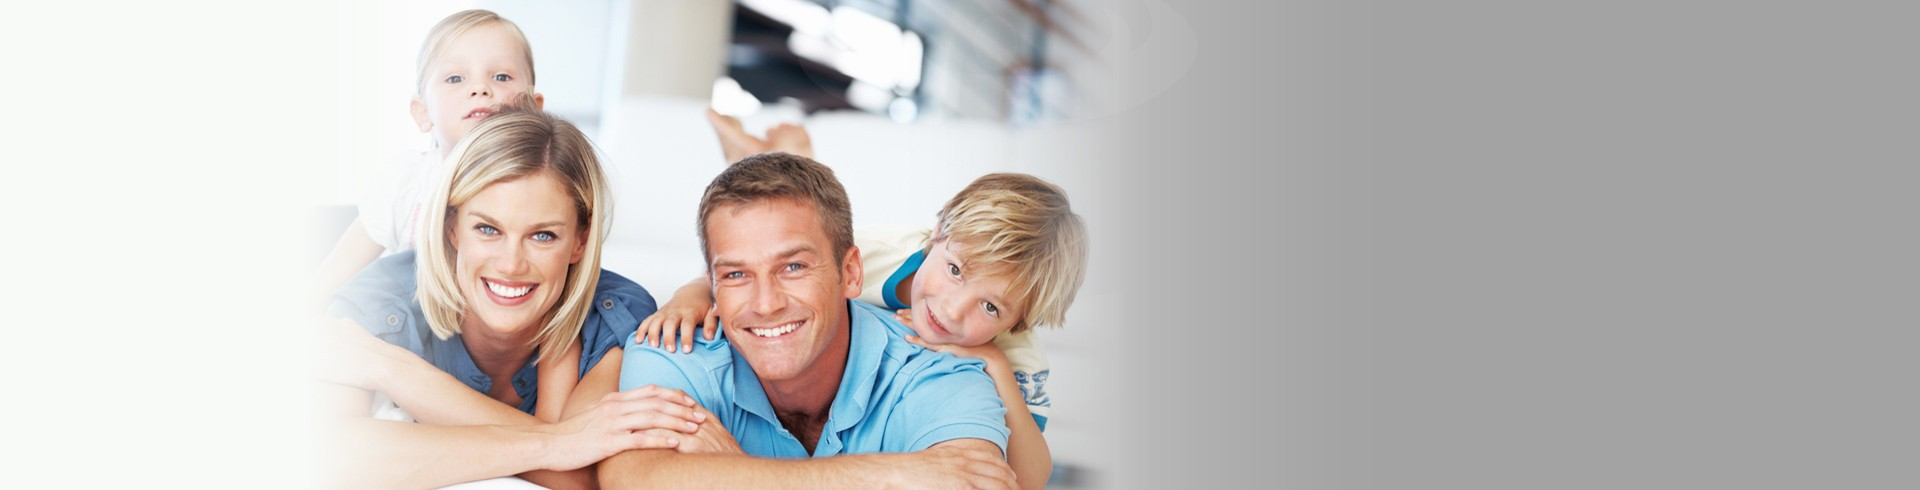 Best Affordable Health Insurance